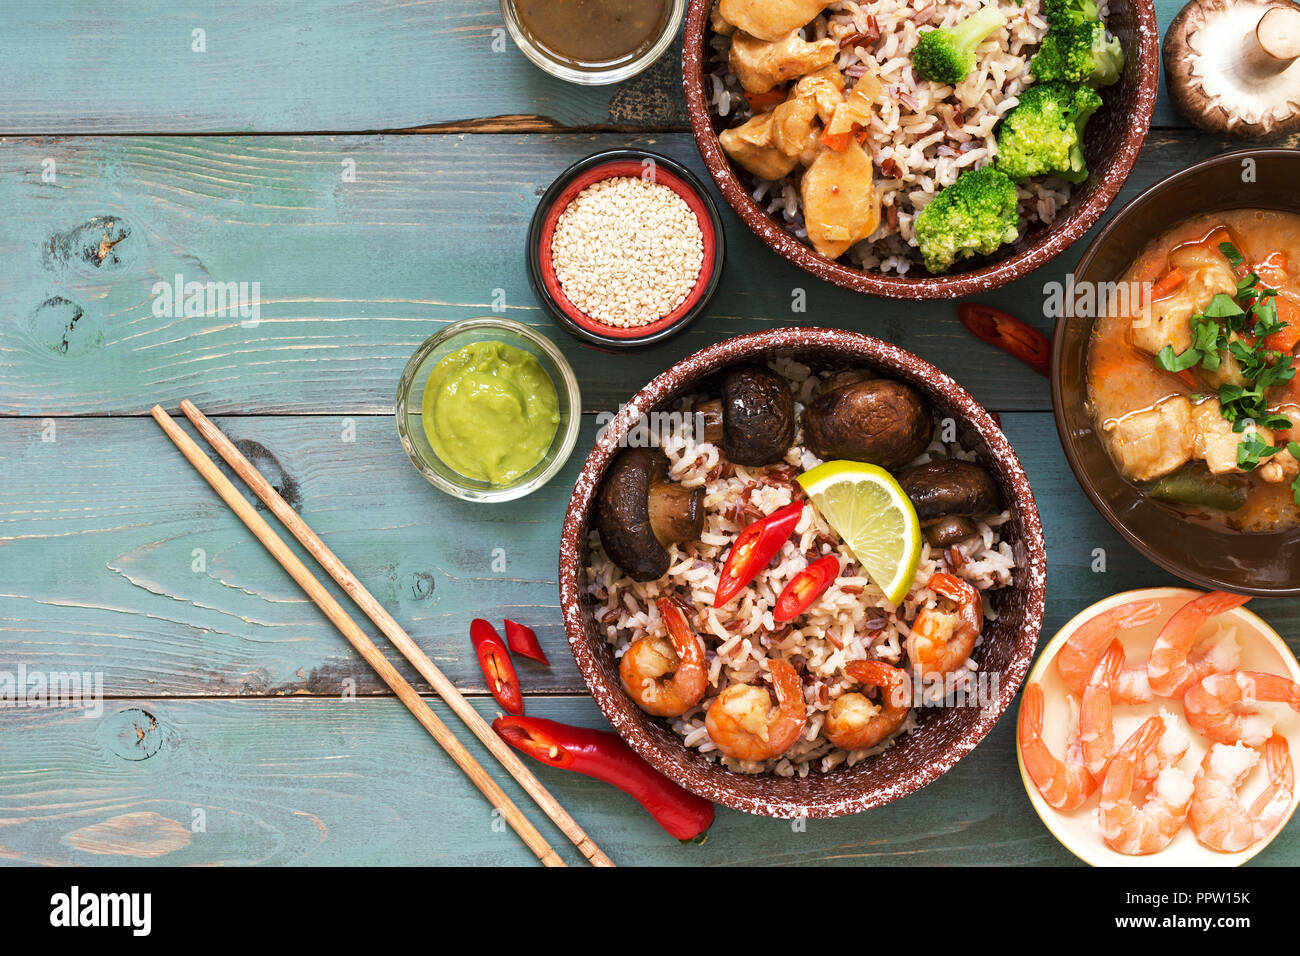 Asian food. Shrimp, rice, mushrooms, broccoli, stewed chicken, sauces on a rustic wooden background. Top view, space for text Stock Photo